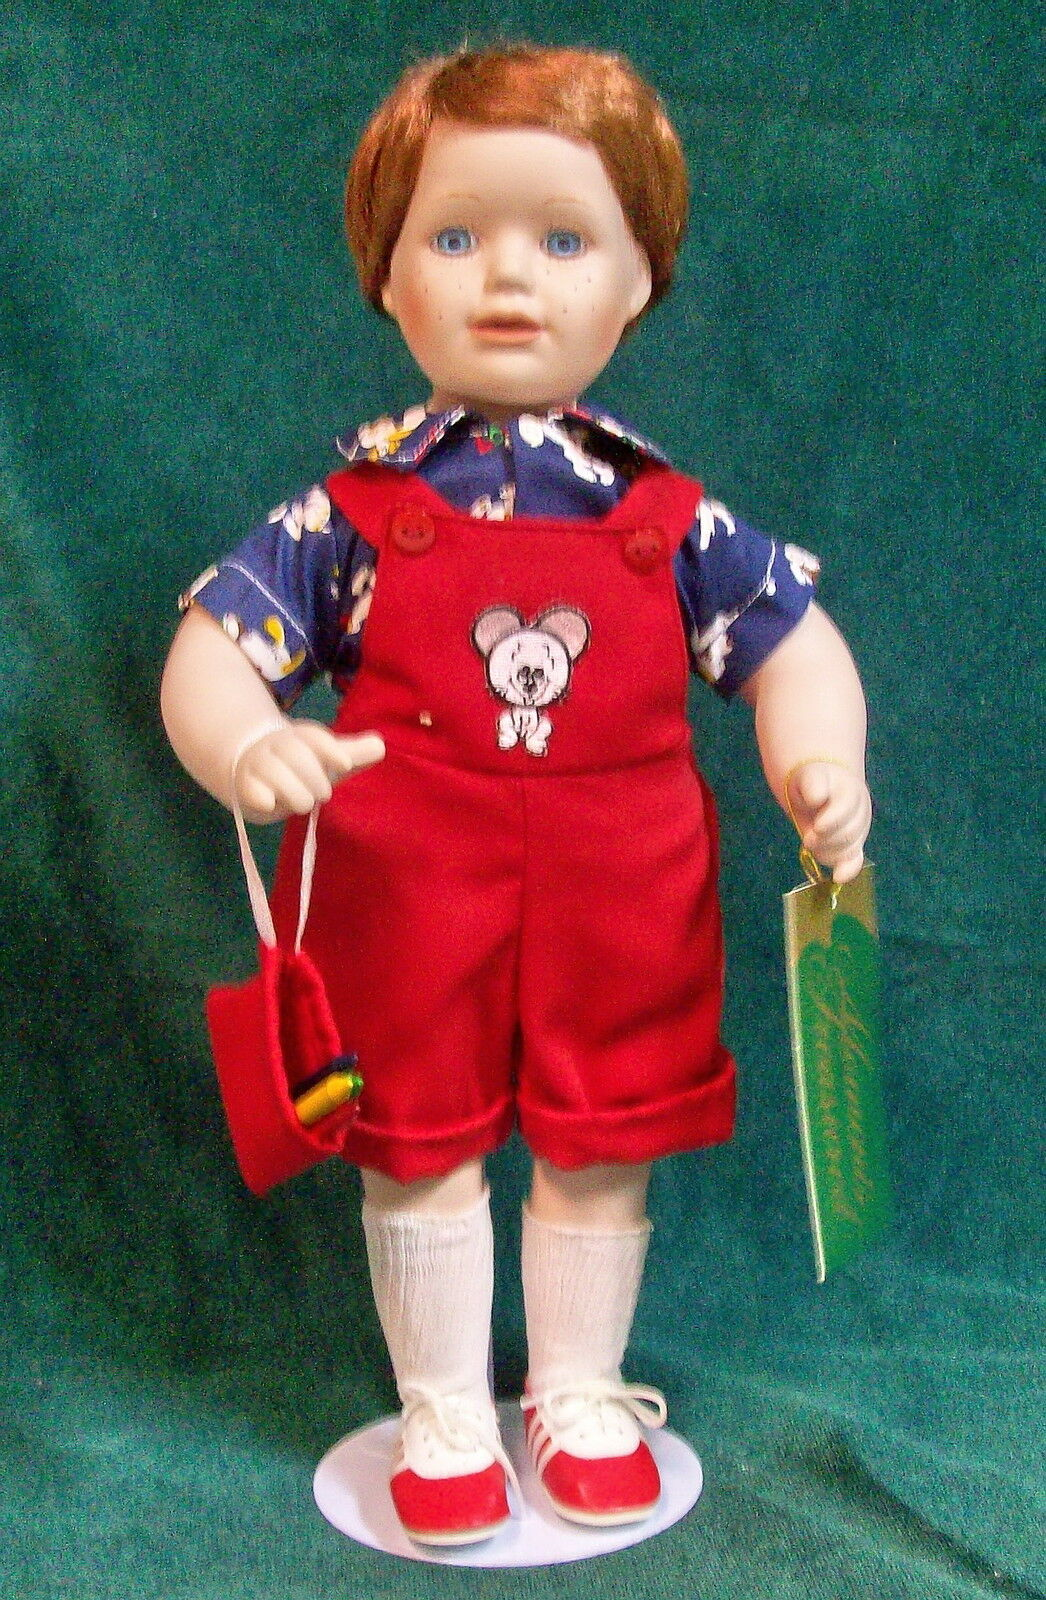 *SETH* Little Boy Doll w/blu EYES, SNOOPY DOG SHIRT & CRAYONS MOUomoTS TREASUrosso